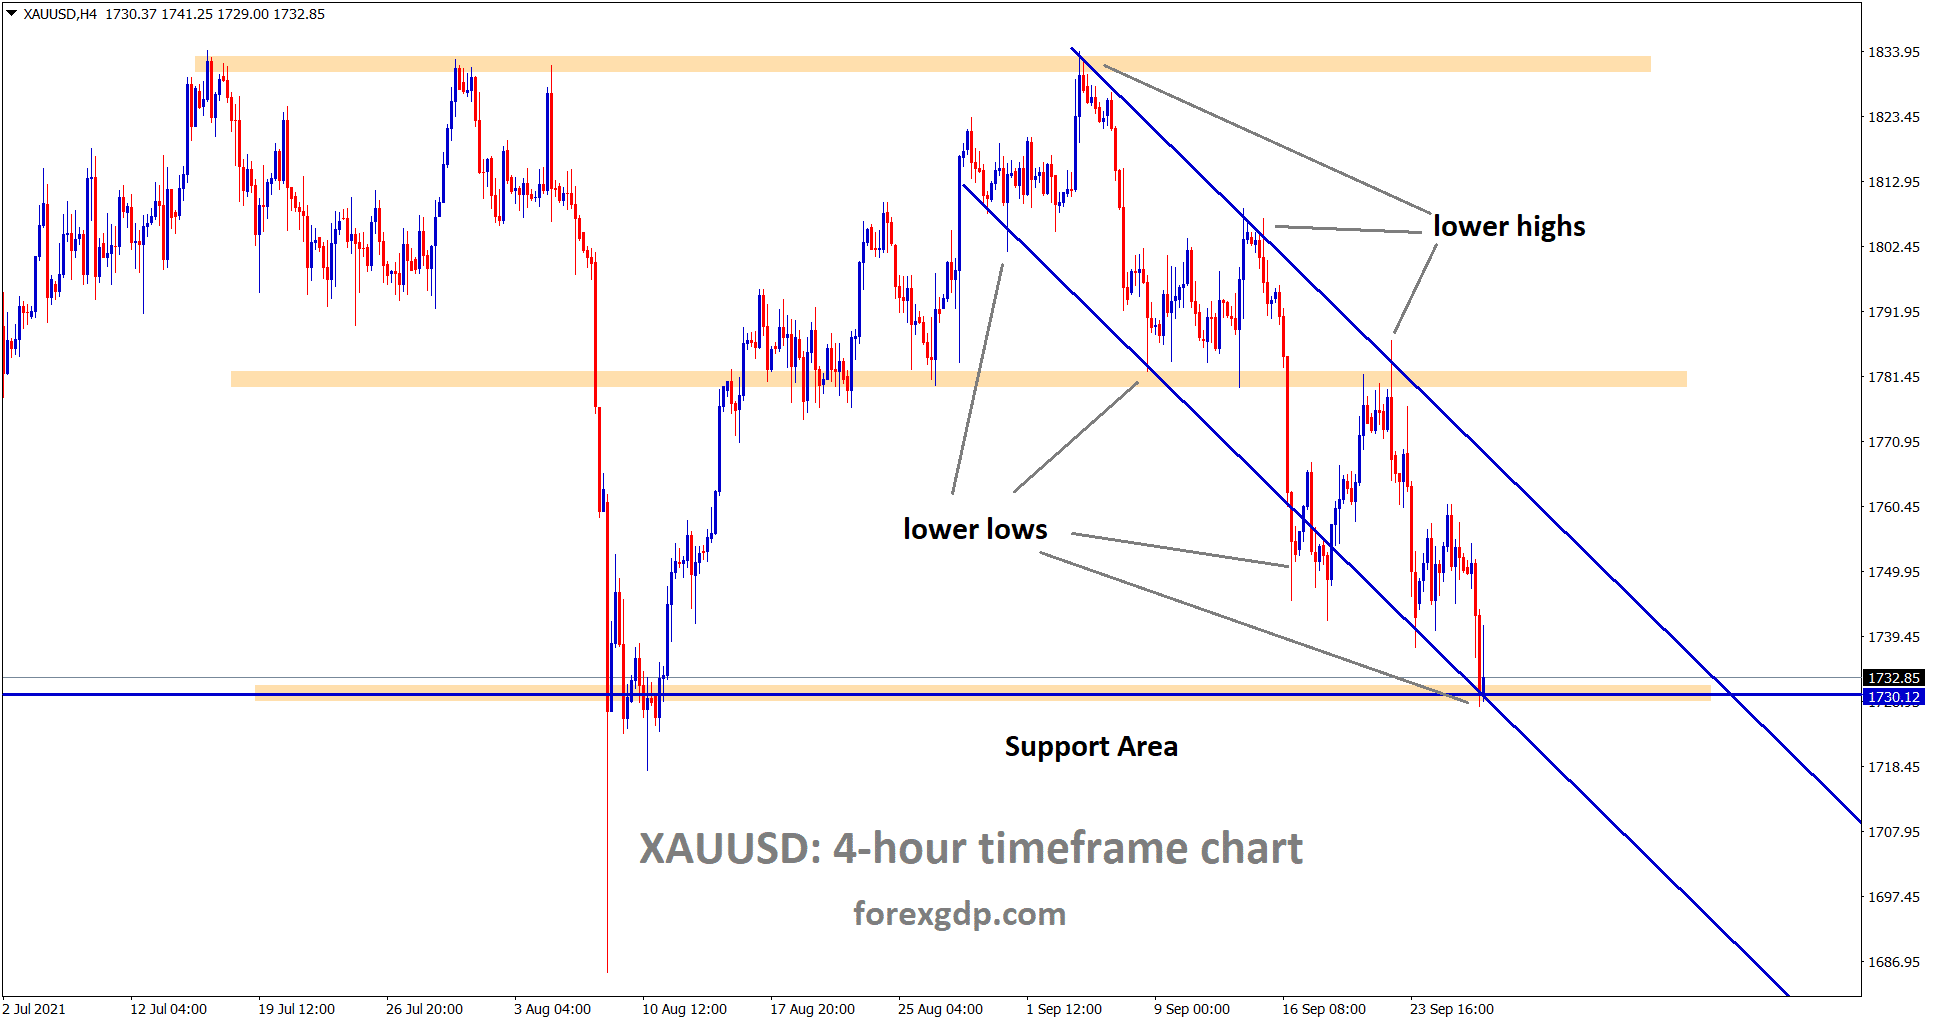 Gold has reached the horizontal support area and the lower low level of the descending channel